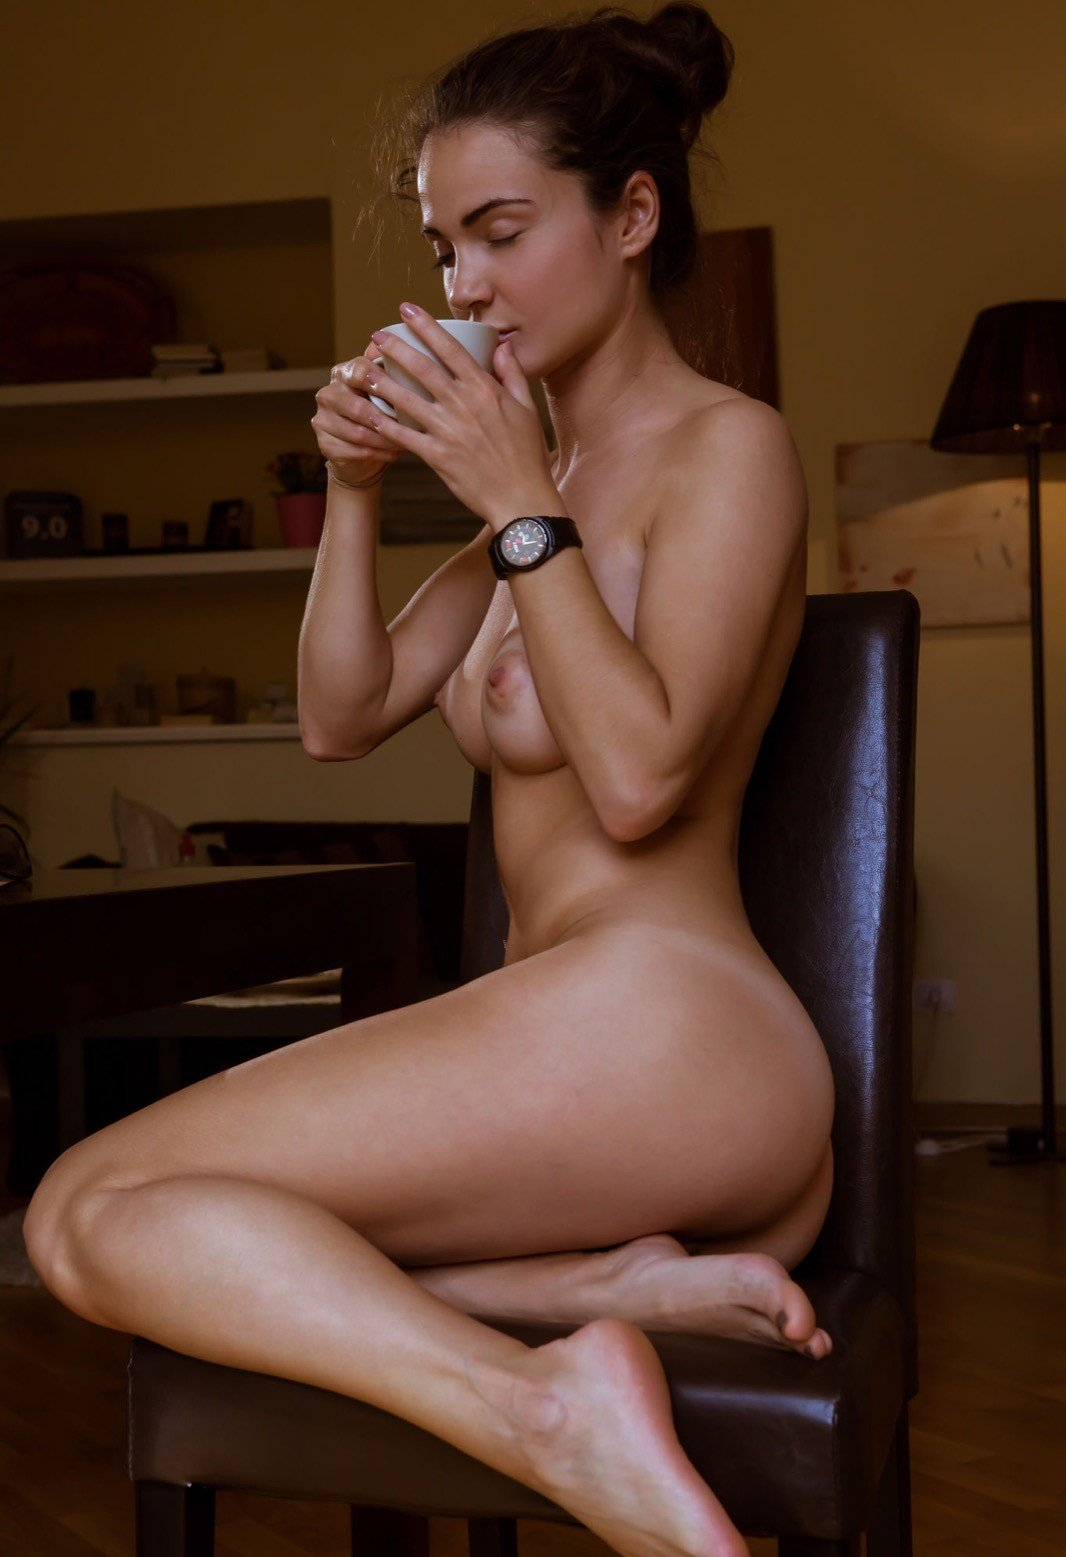 free online nude cams authoritative answer